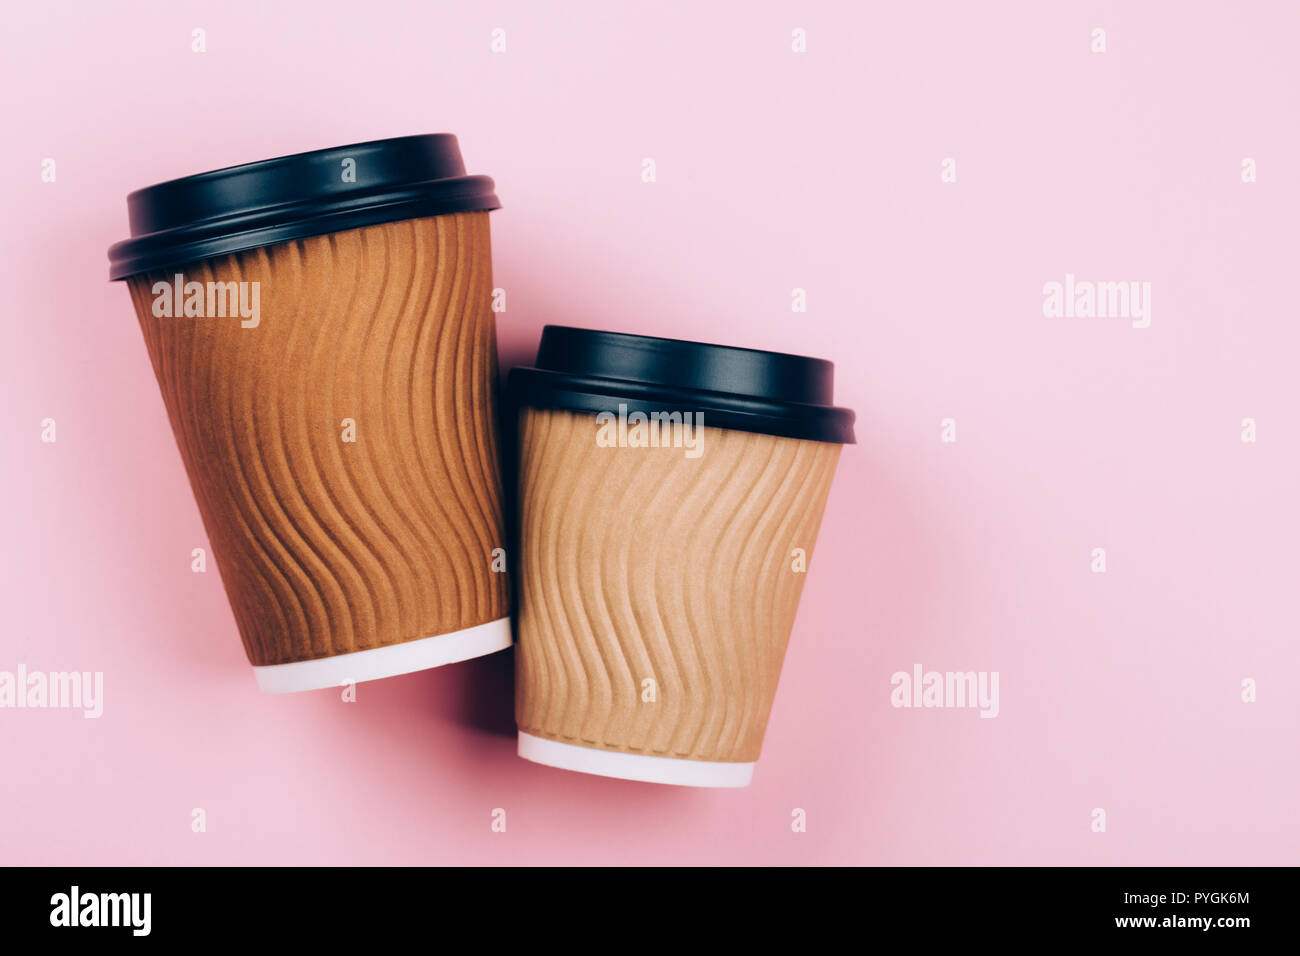 6867b32d68b Two brown craft cups of coffee to go on pastel pink background. Flat lay  style. Place for text.